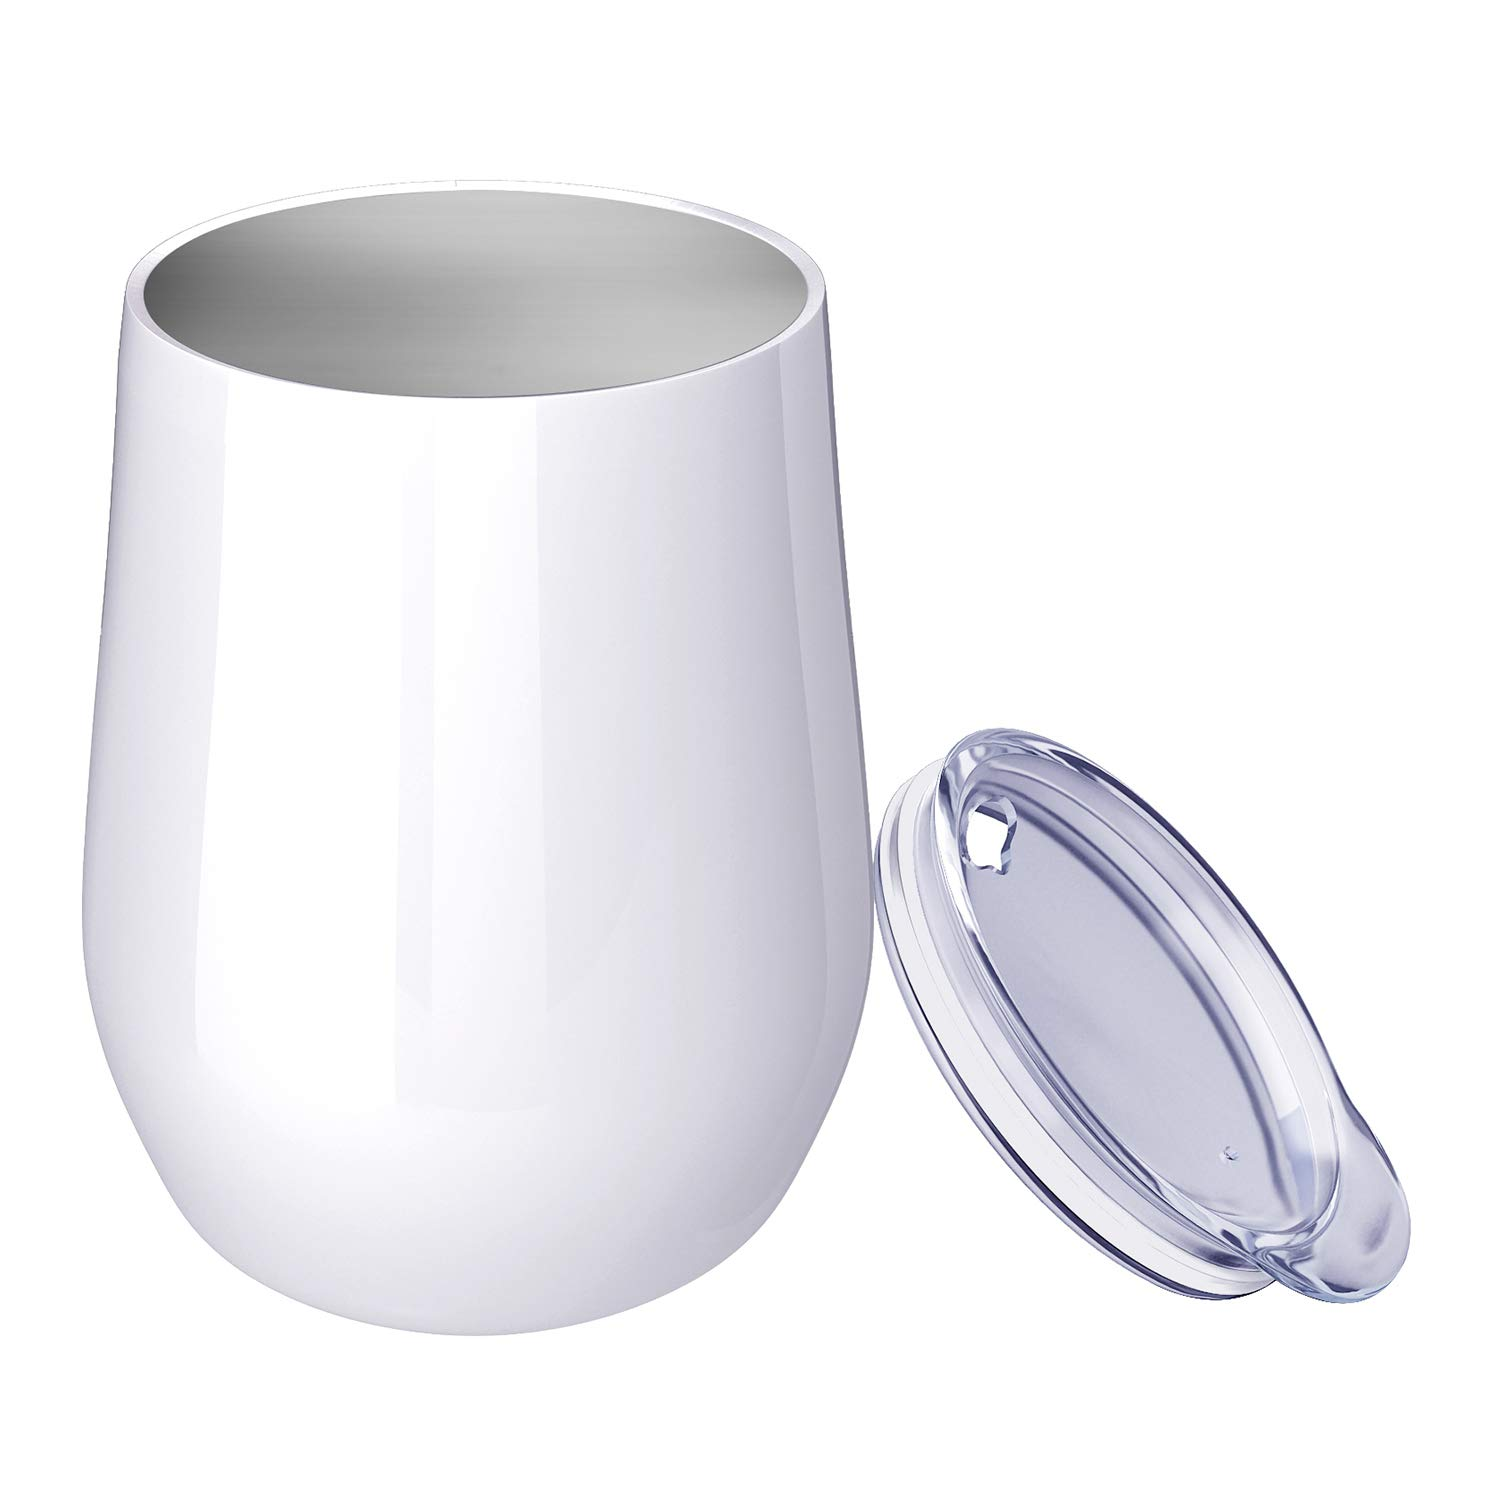 Double Wall Vacuum Insulated Stemless Stainless Steel Wine Cup Gold2 2 Pack 12 oz Insulated Wine Tumbler Glasses with Lid